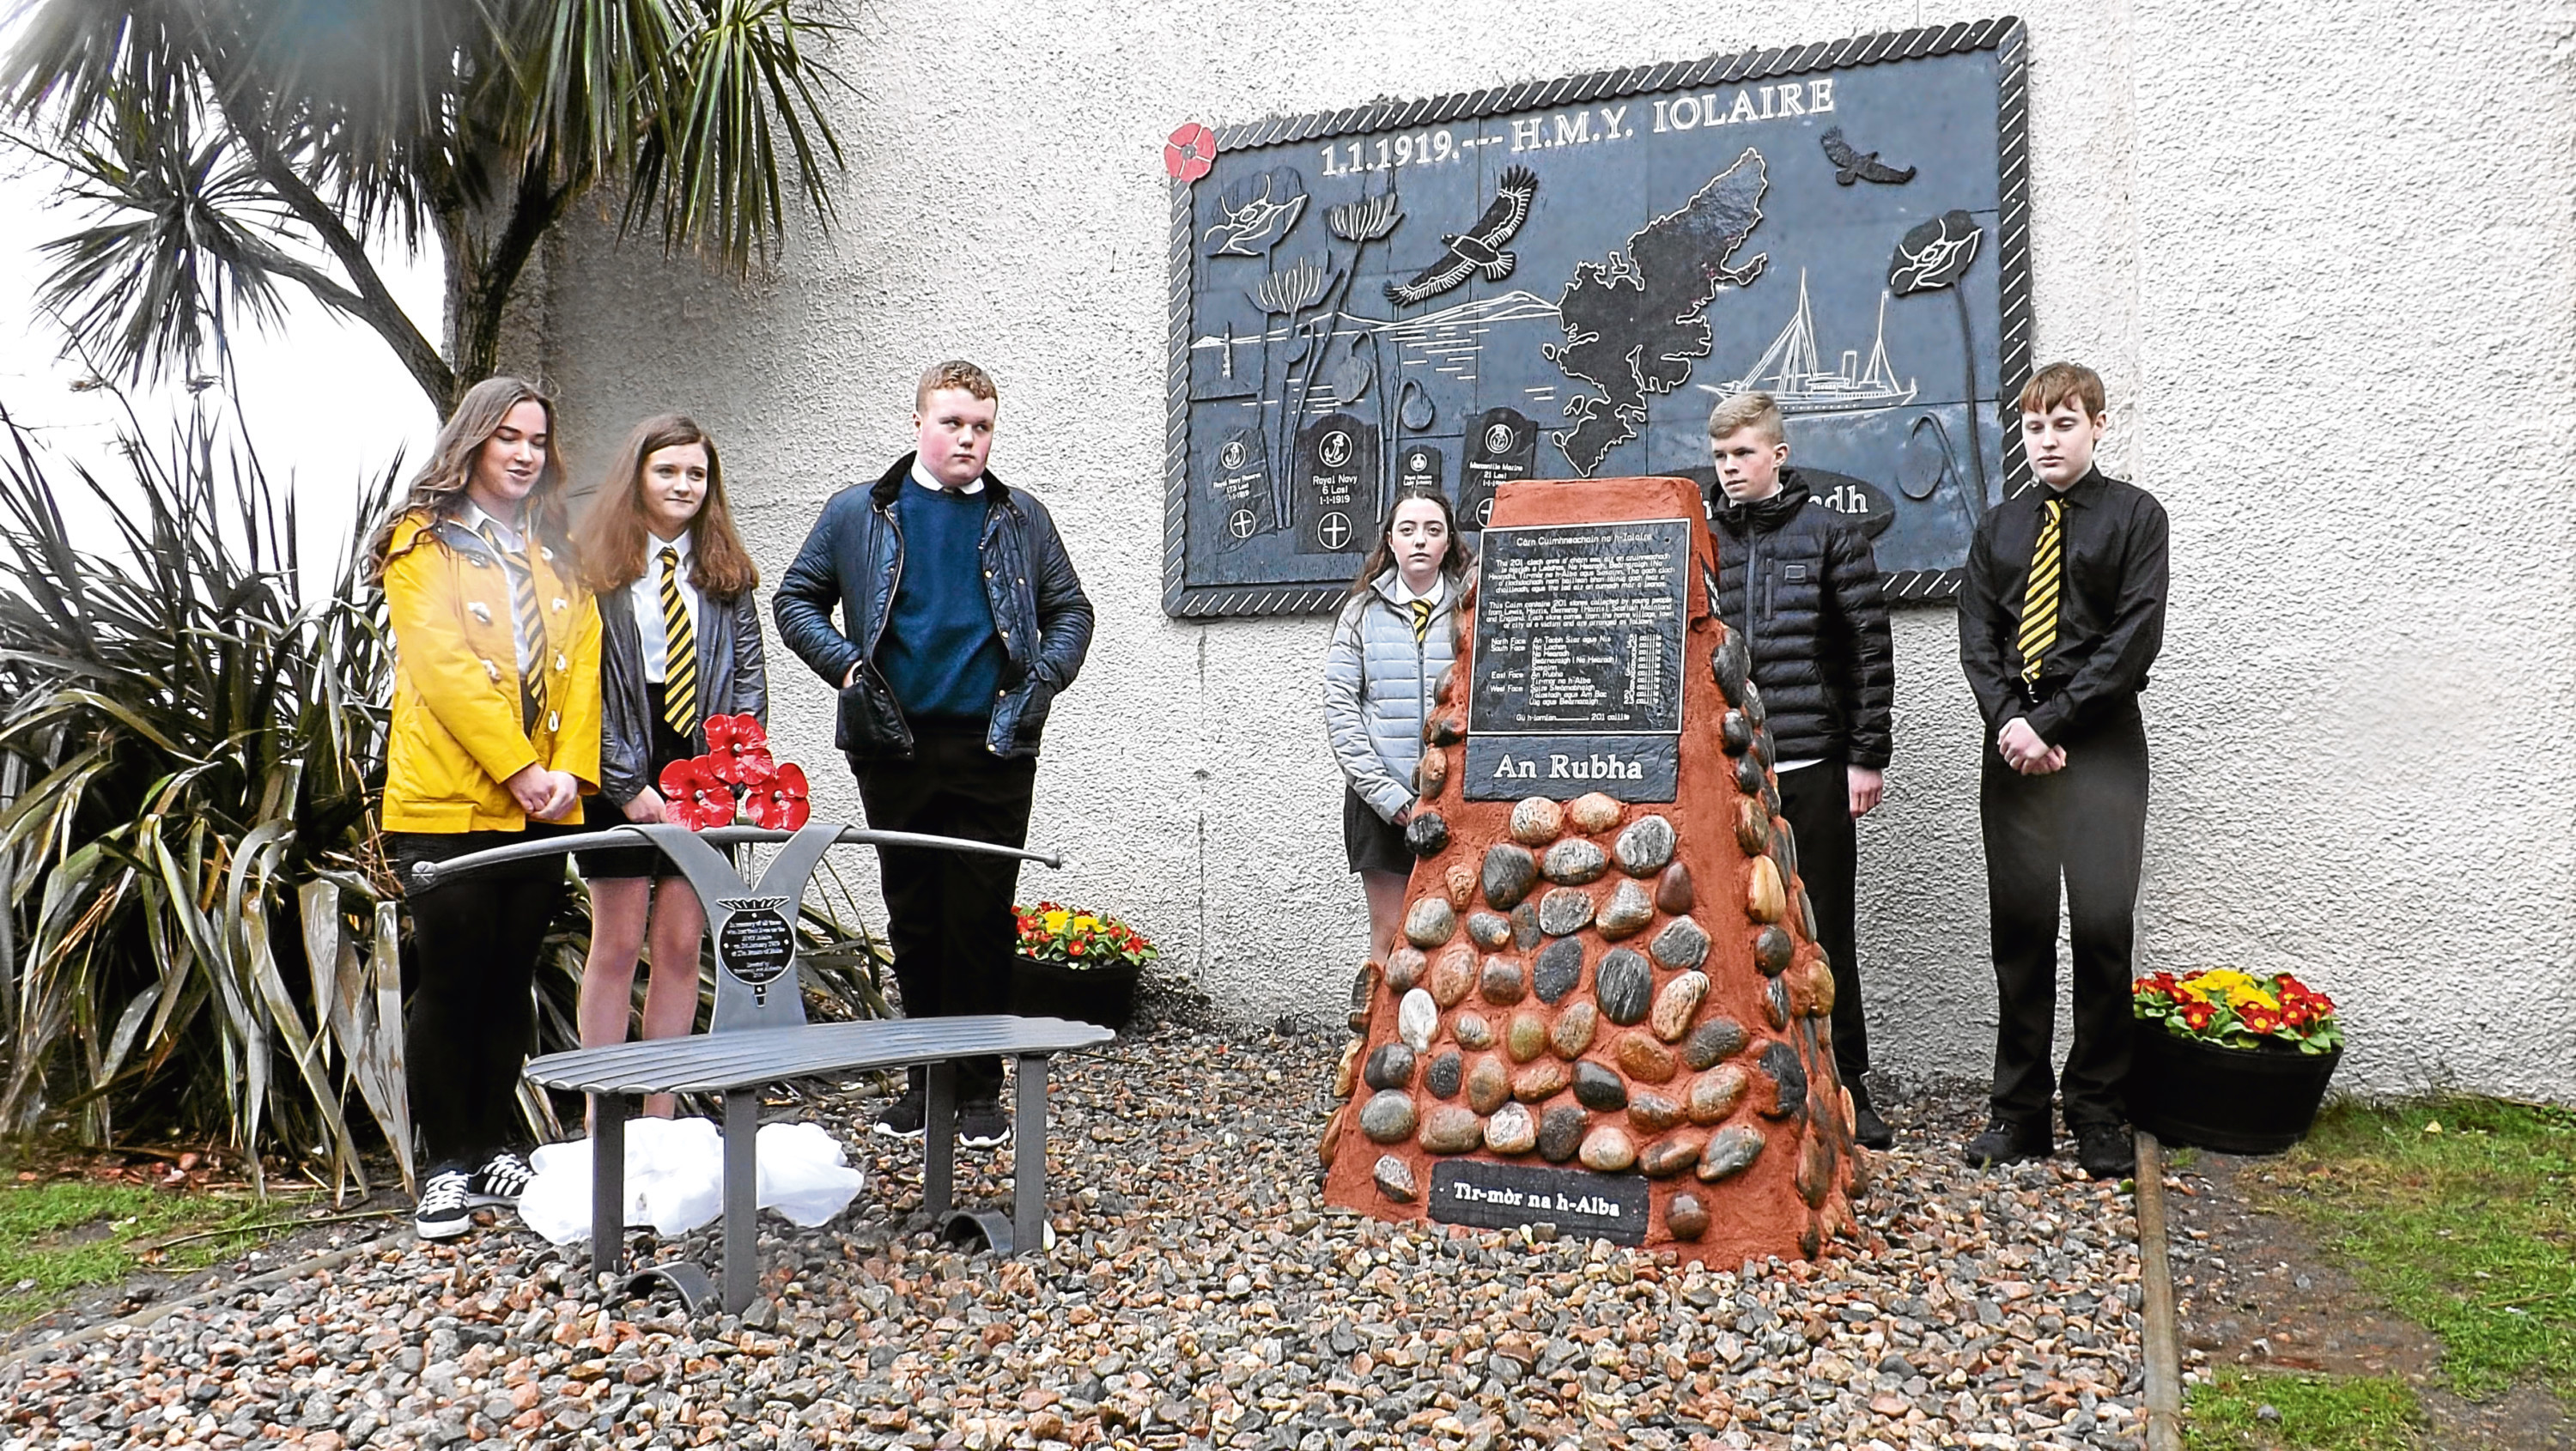 FROM MIKE MERRITT 07774637768. Unveilling of the memorial cairn.  It is a poignant tribute to one of Scotland's most heartbreaking losses of life.   Stones have been collected from the home village of each of the 201 sailors lost on the infamous Iolaire naval tragedy and will be incorporated into a unique memorial on the Isle of Lewis unveiled today